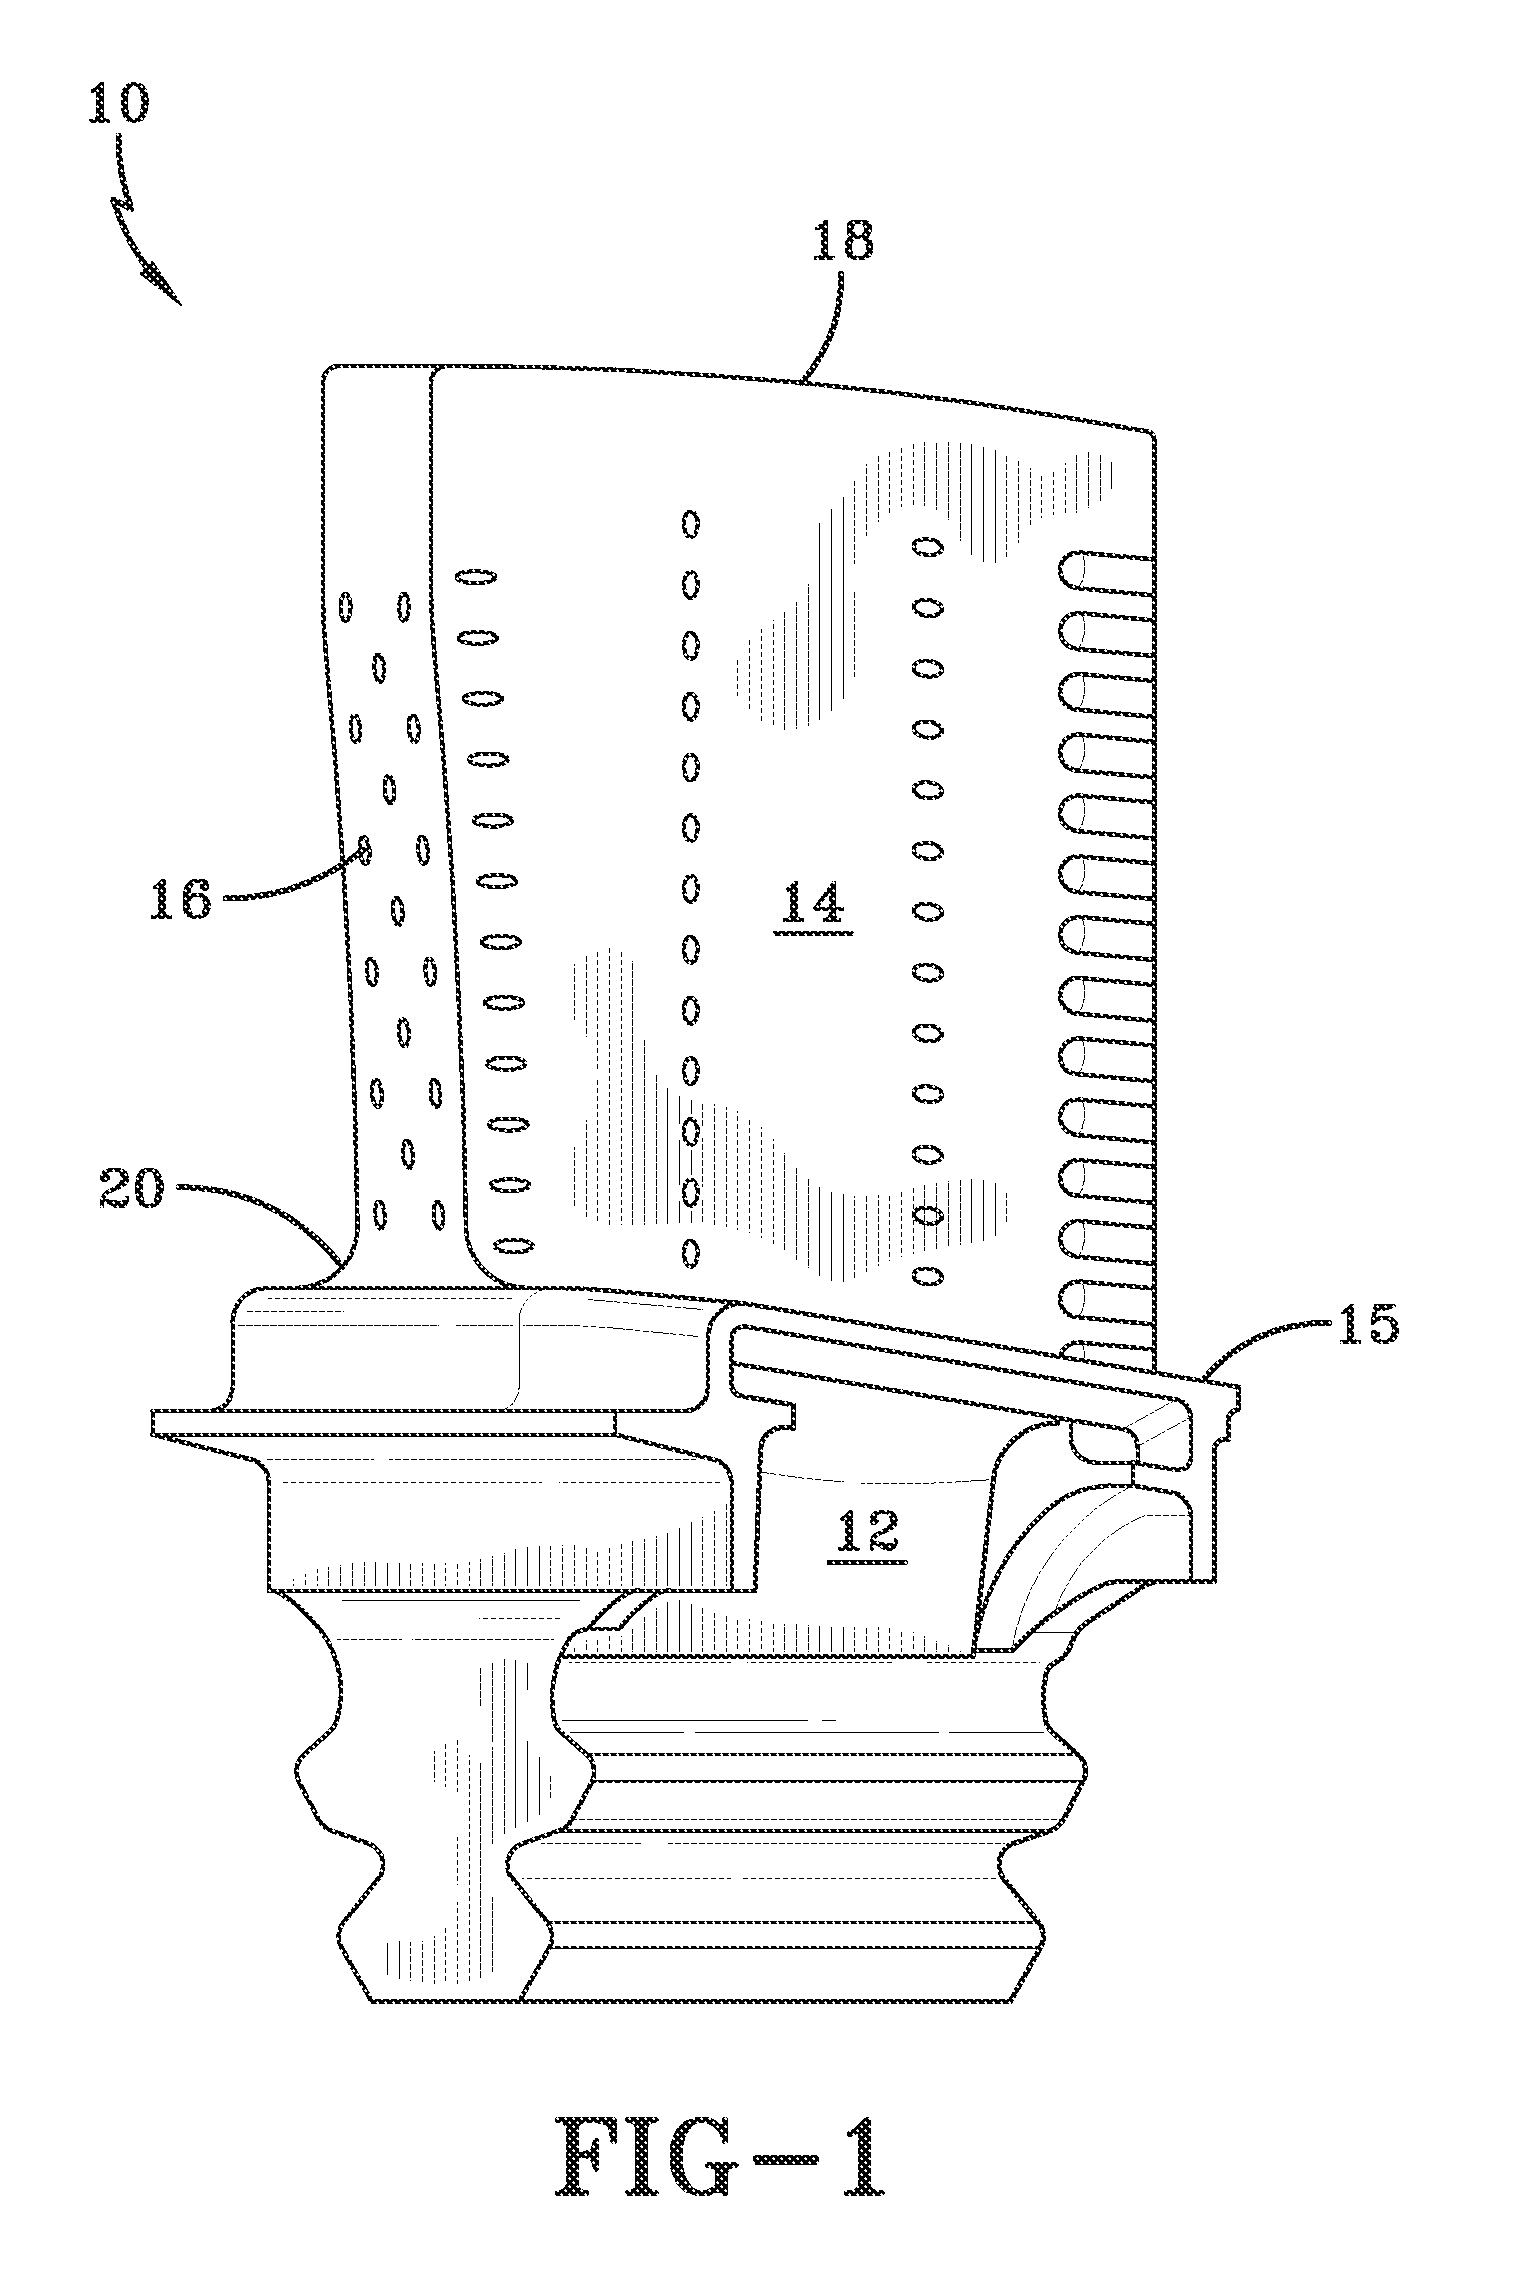 Patent US Method for refurbishing PtAl coating to turbine